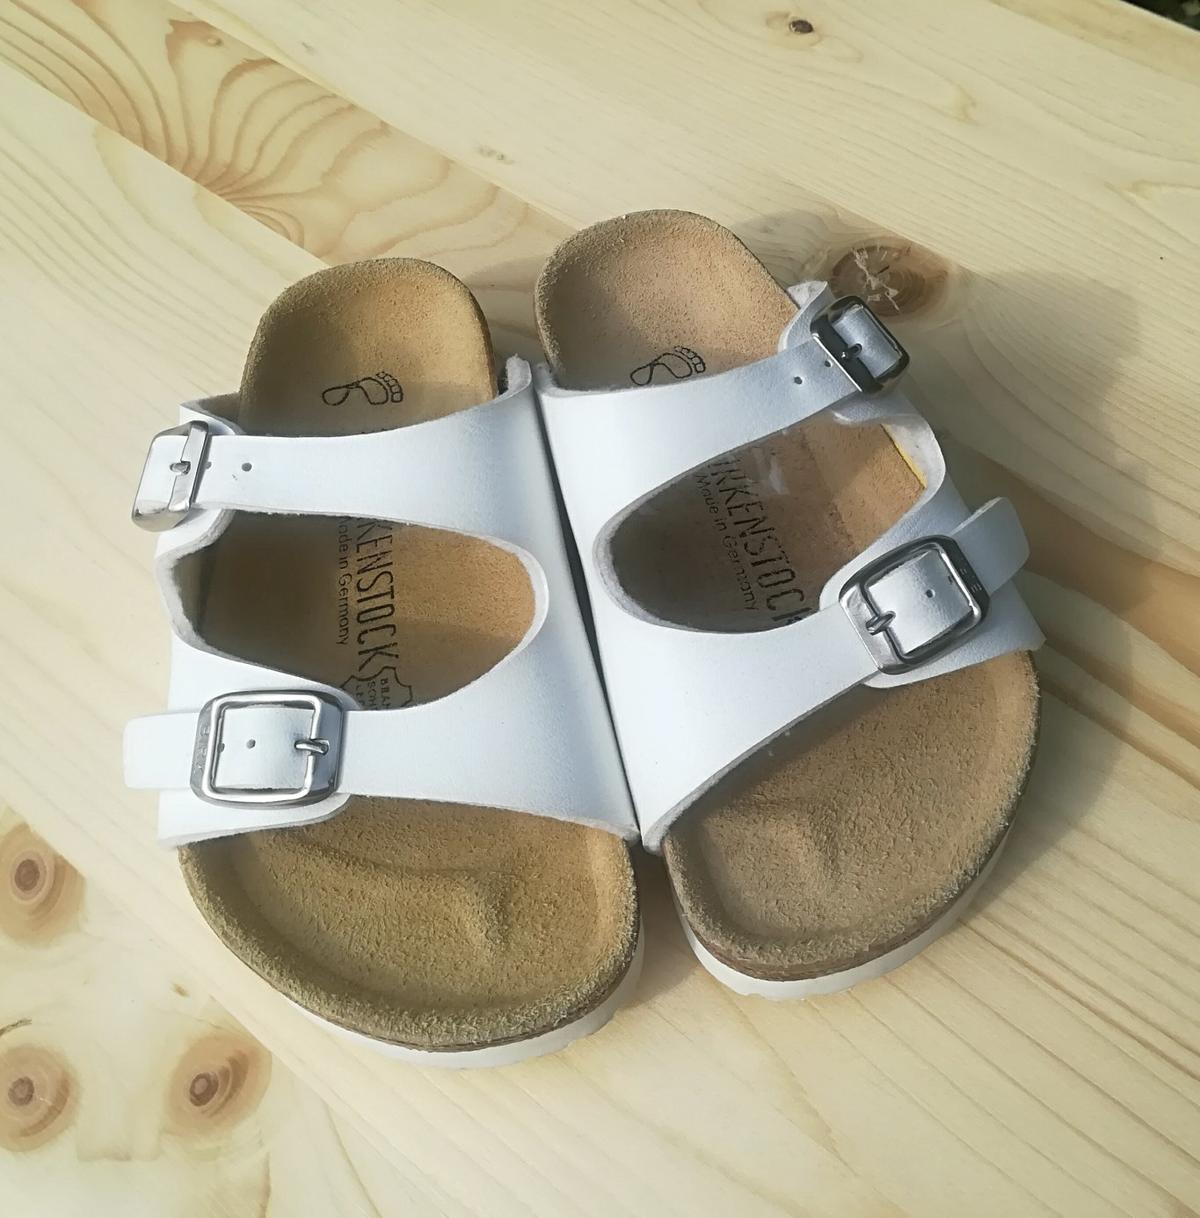 Birkenstock Arizona Sandalen für Kinder*Gr.27 in 64646